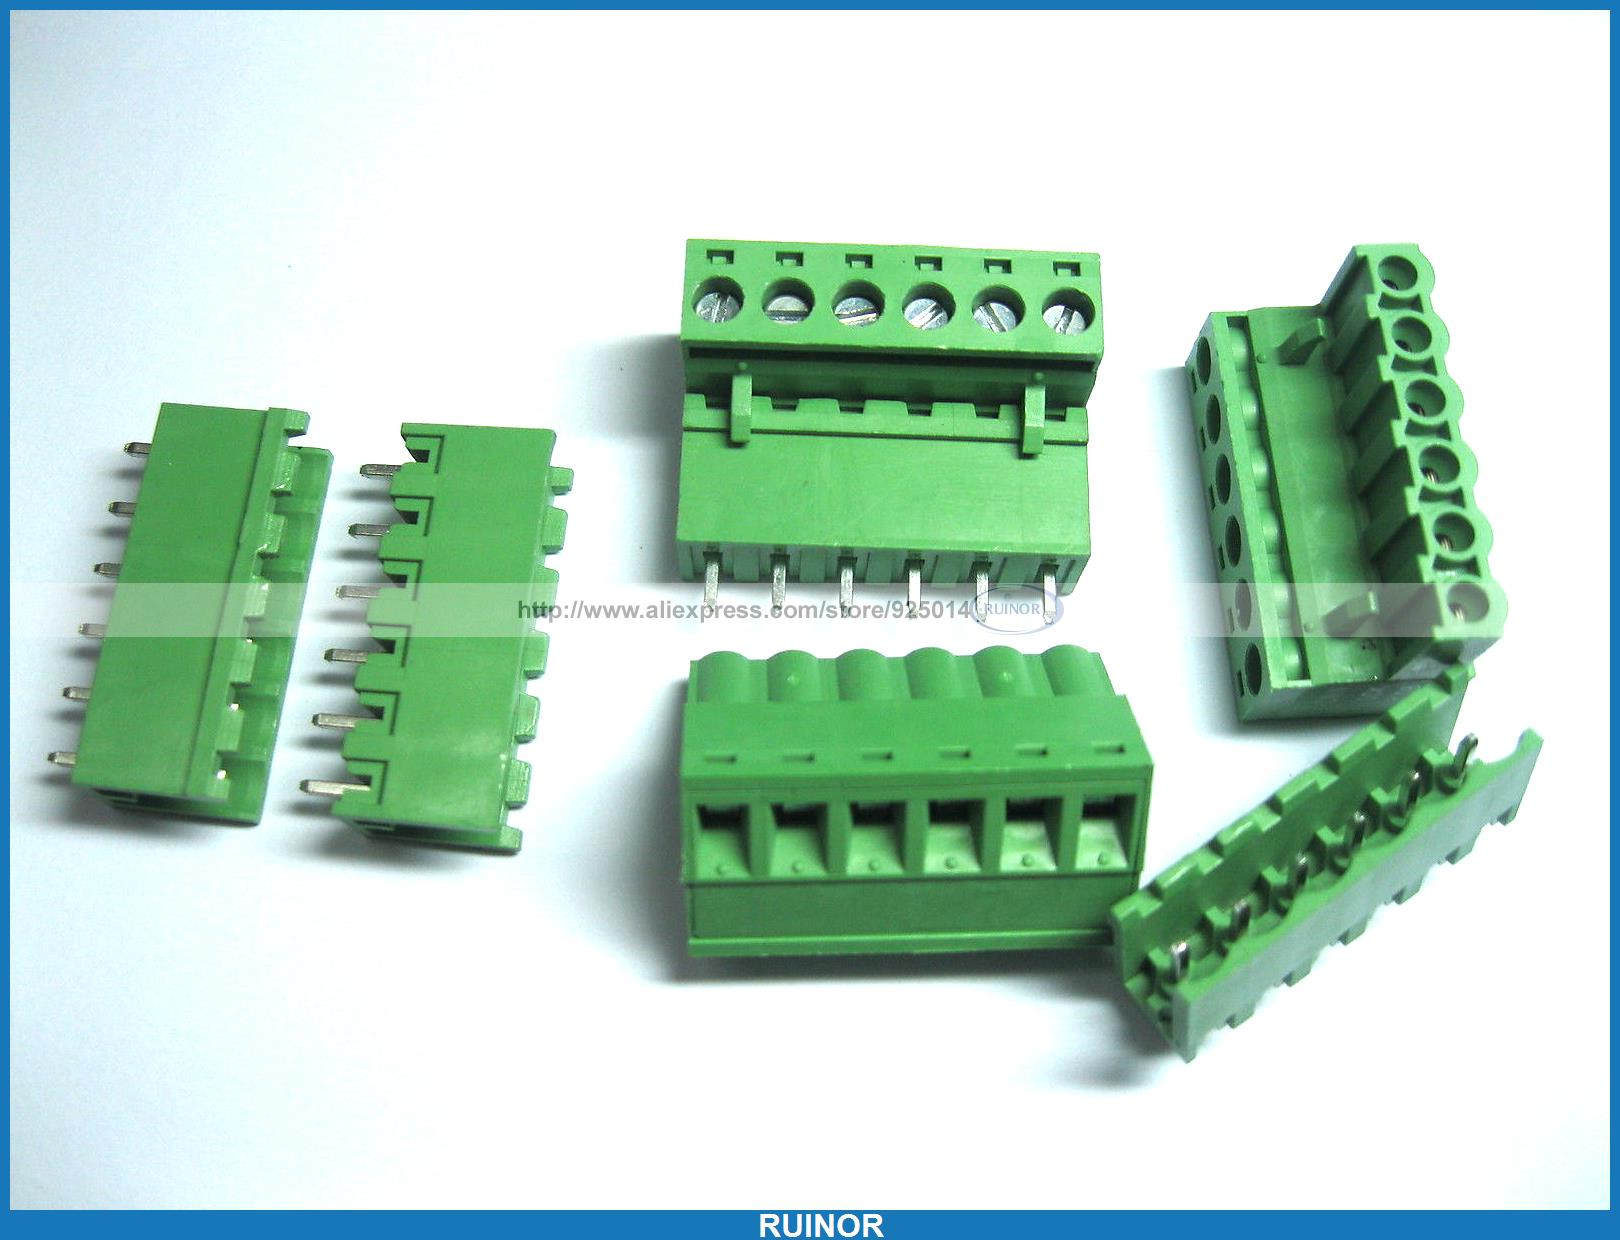 100 Pcs Green 6 Pin 5 08mm Screw Terminal Block Connector Pluggable Type 5 pcs 400v 20a 7 position screw barrier terminal block bar connector replacement